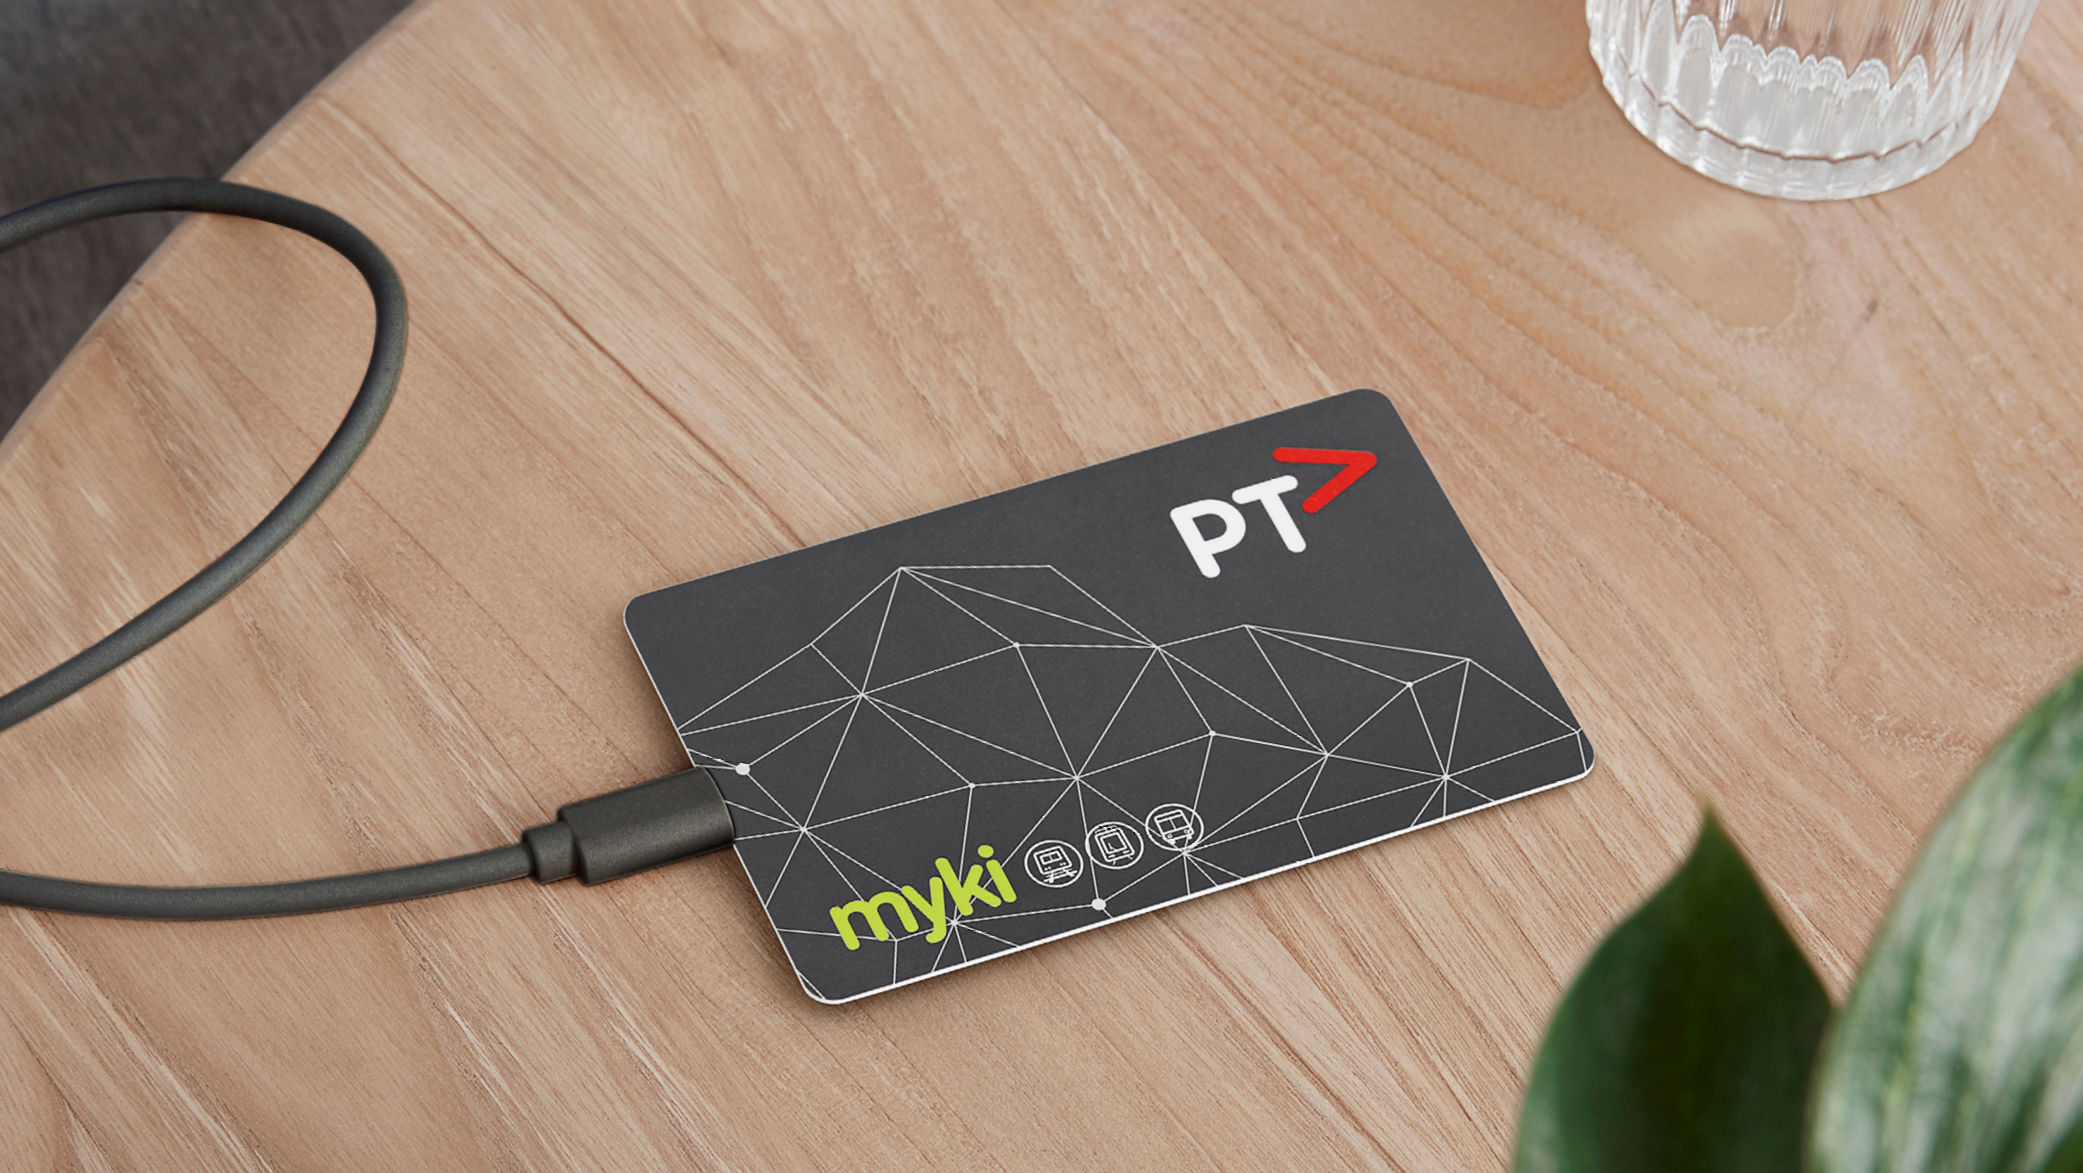 myki on table